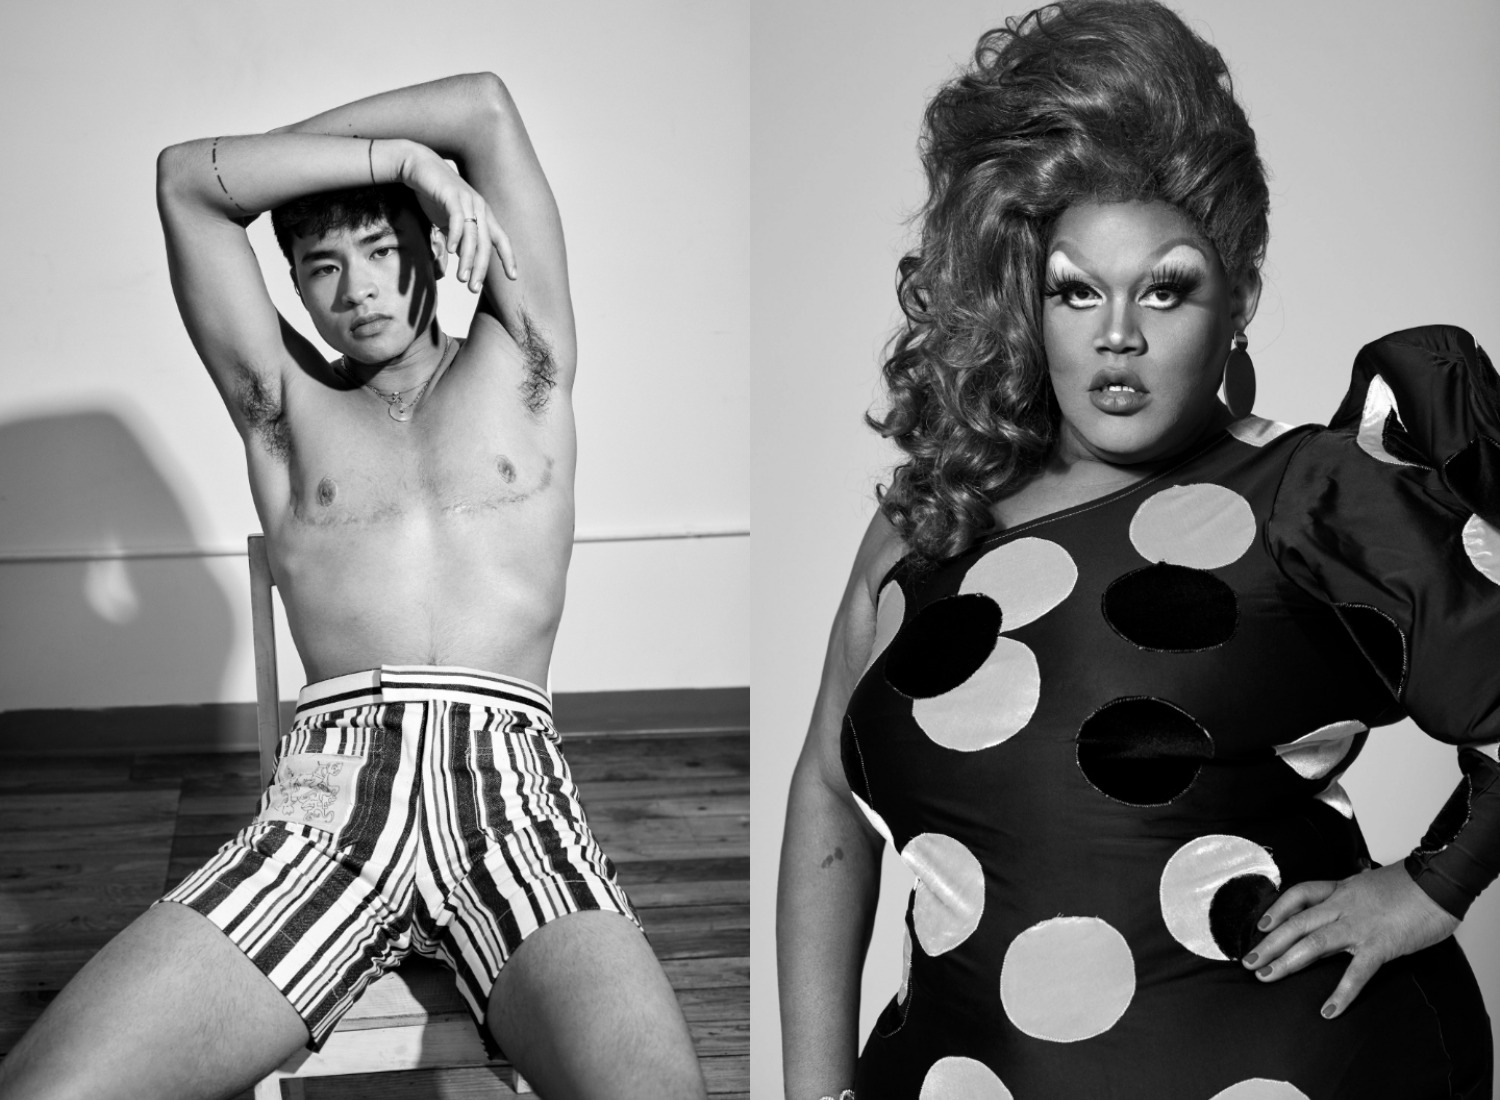 Collier Schorr's portraits of LGBTQ activists and artists